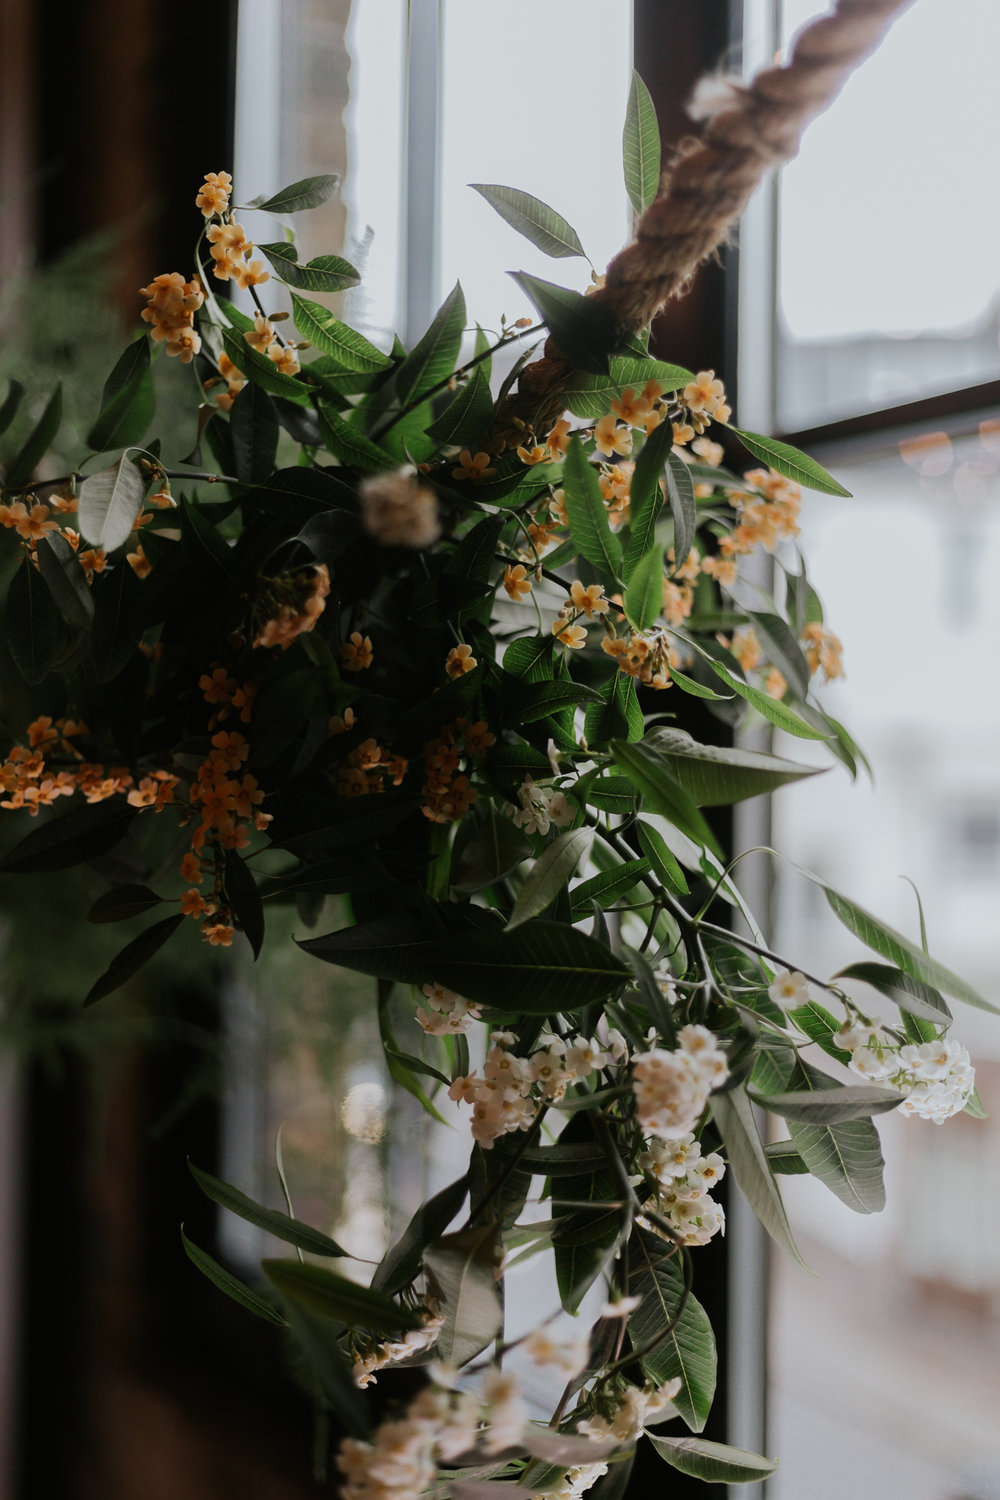 Quirky Venue, Non-traditional wedding planner, London Wedding coordination, Event Bar, Bespoke weddings, Brixton East 1871 Wedding, Streetfood wedding, informal, Stylish, Worm London